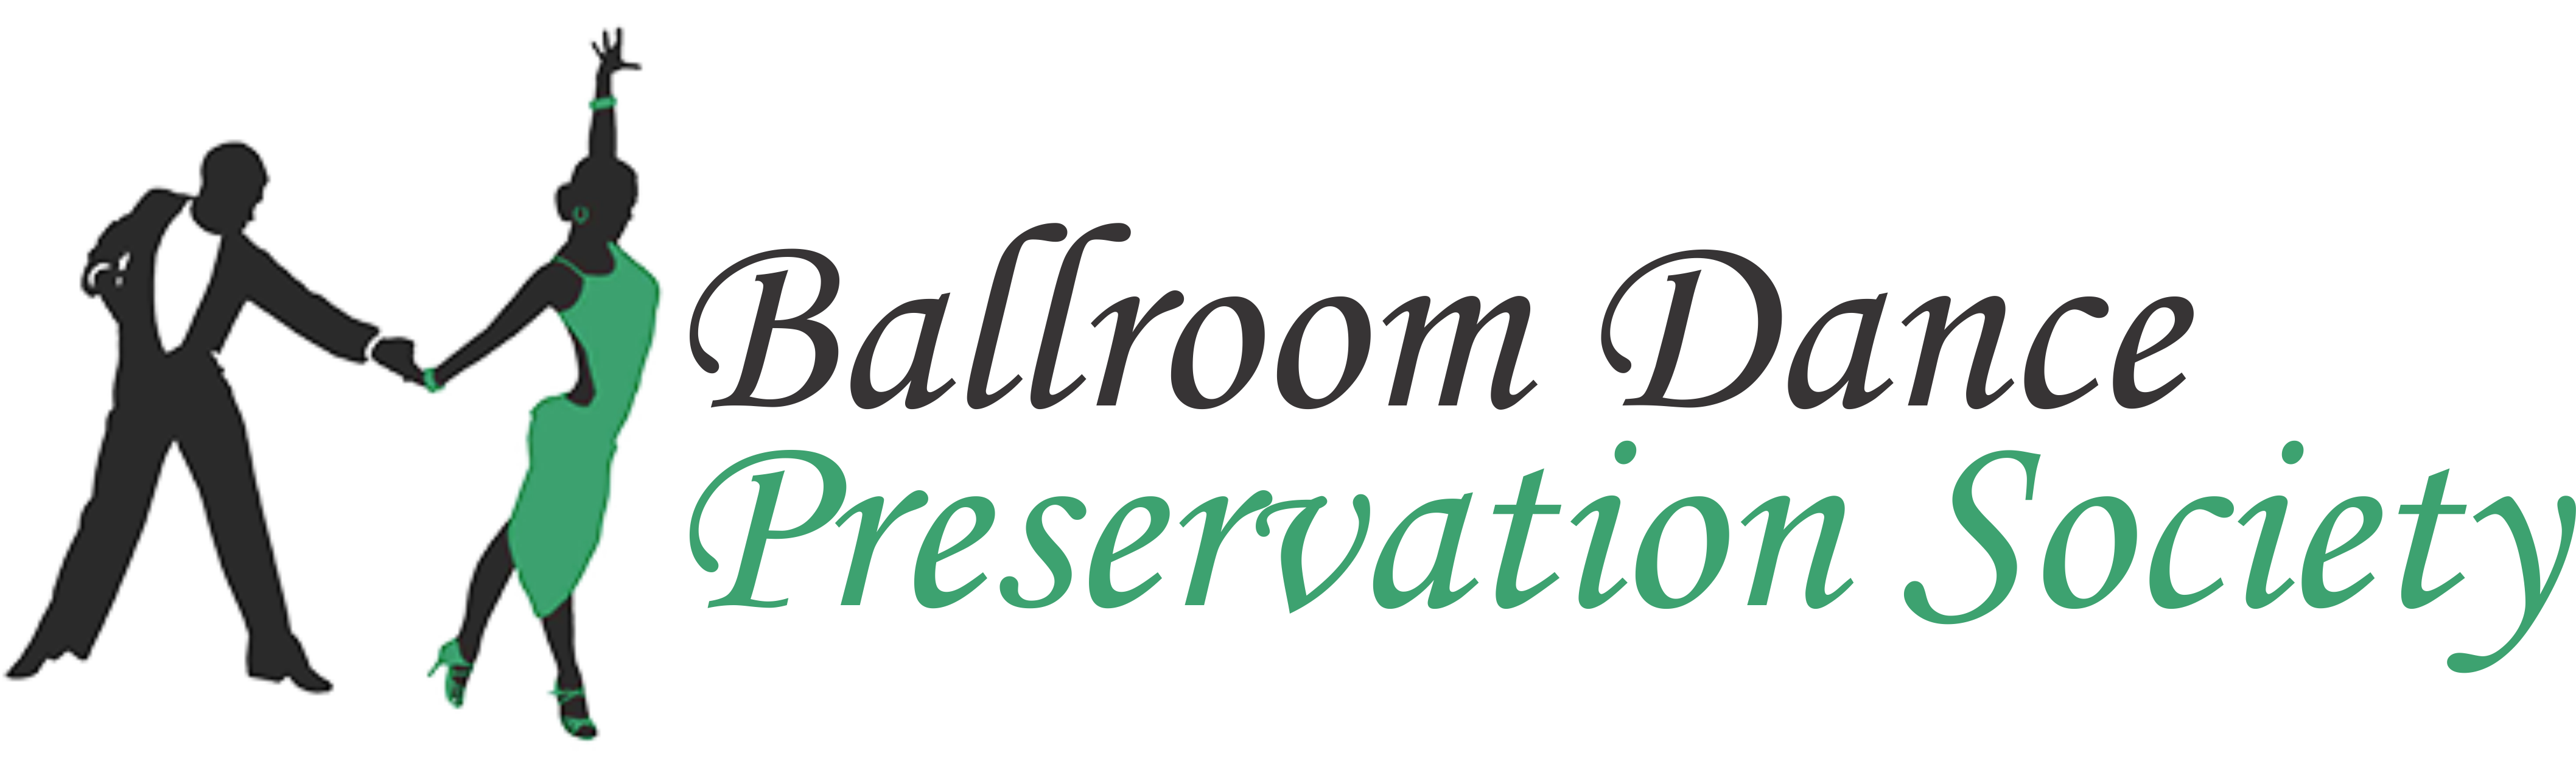 Ballroom Dance Preservation Society